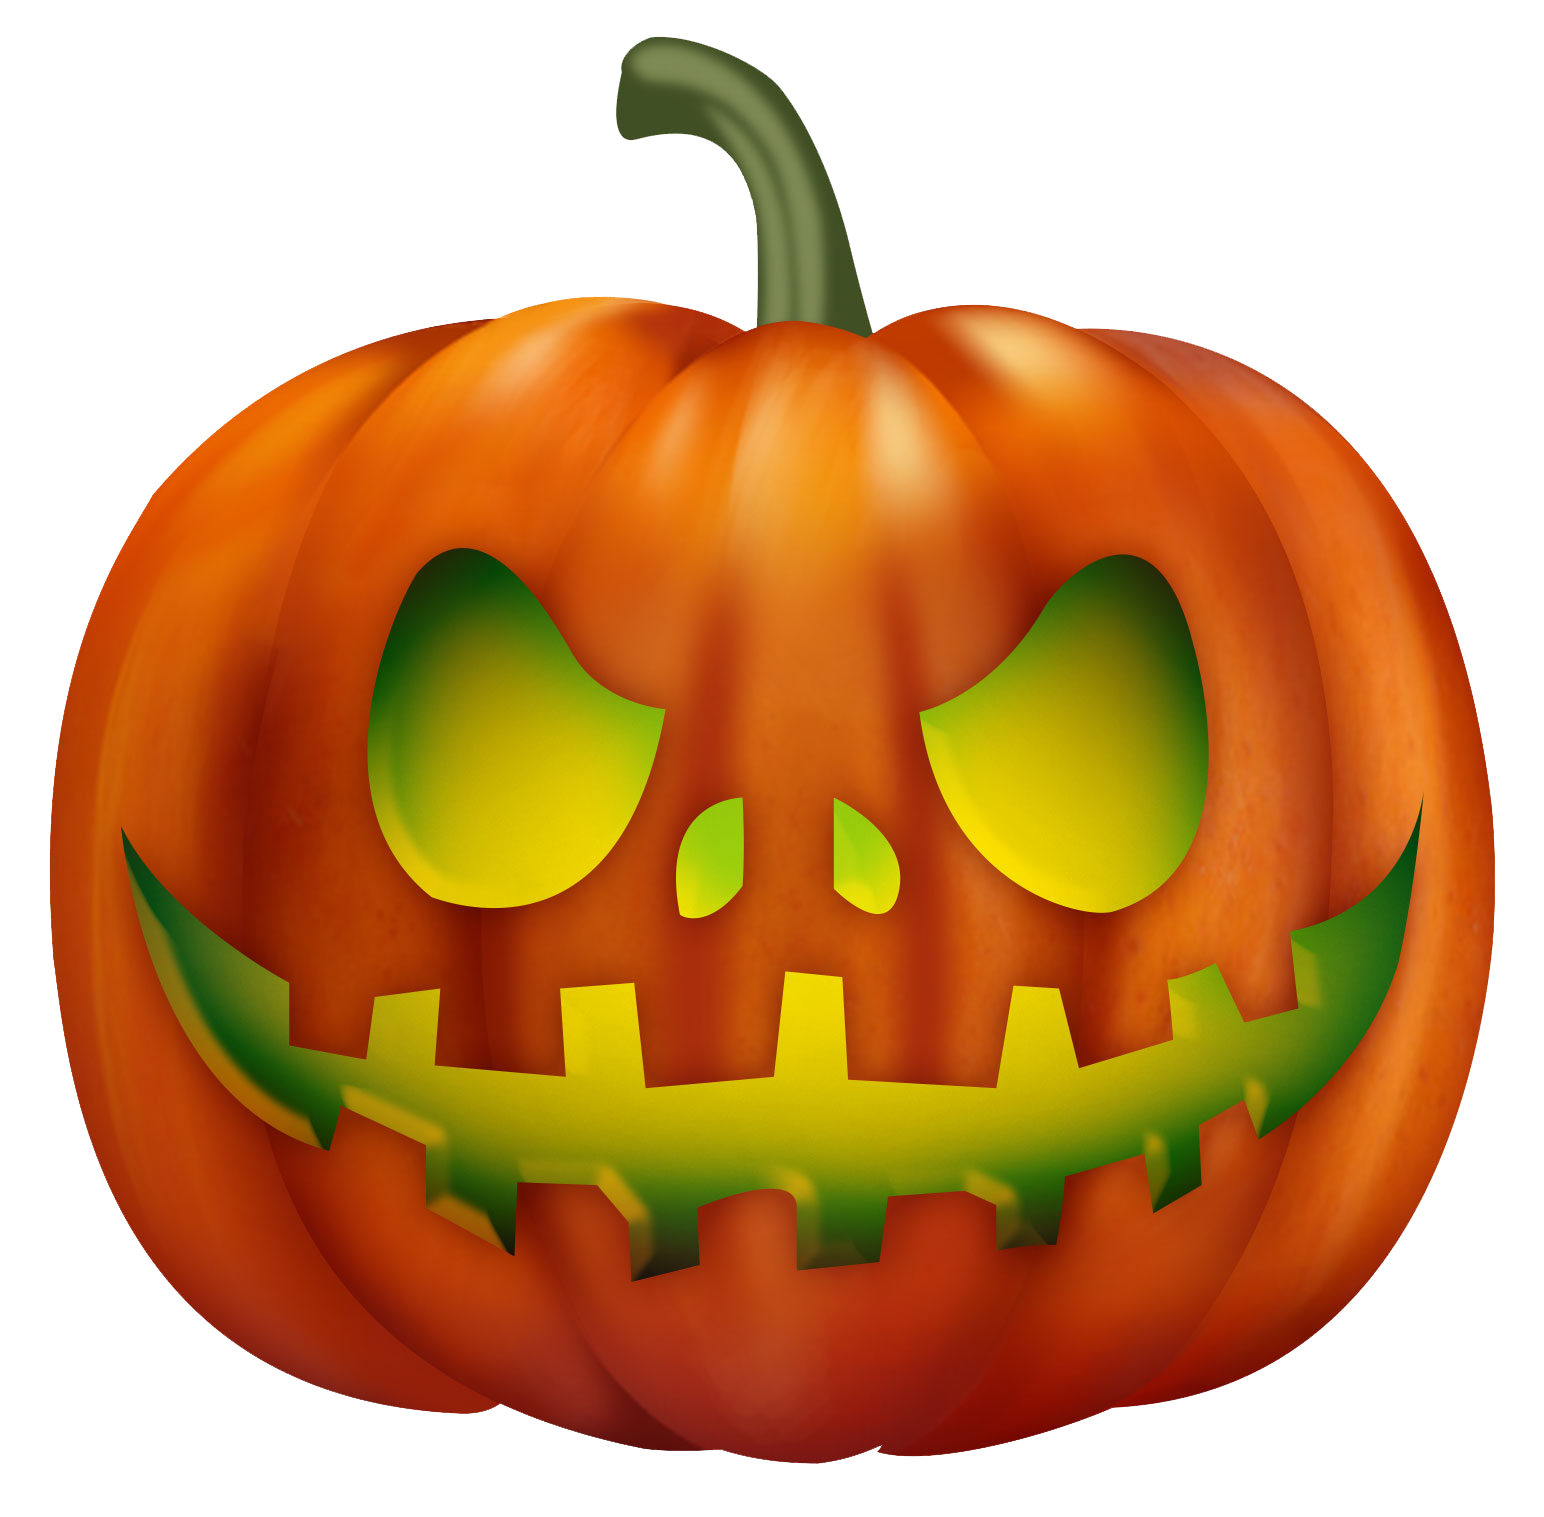 Carved pumpkin clipart png vector royalty free stock Halloween Pumpkin Png   cyberuse vector royalty free stock